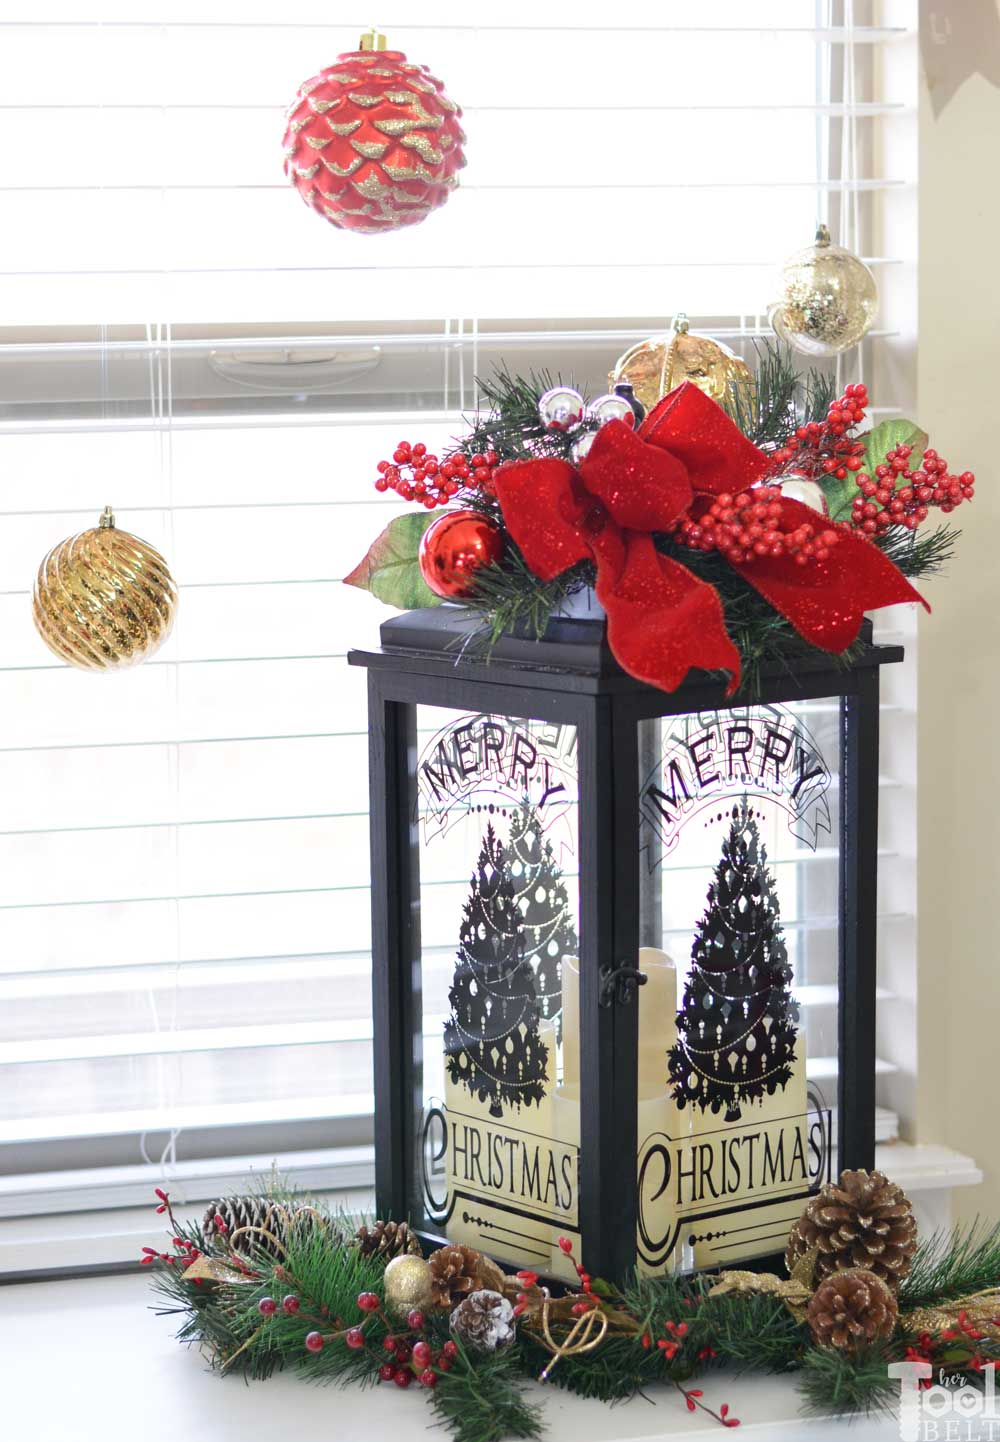 Holiday Decor in the Living Room - Her Tool Belt